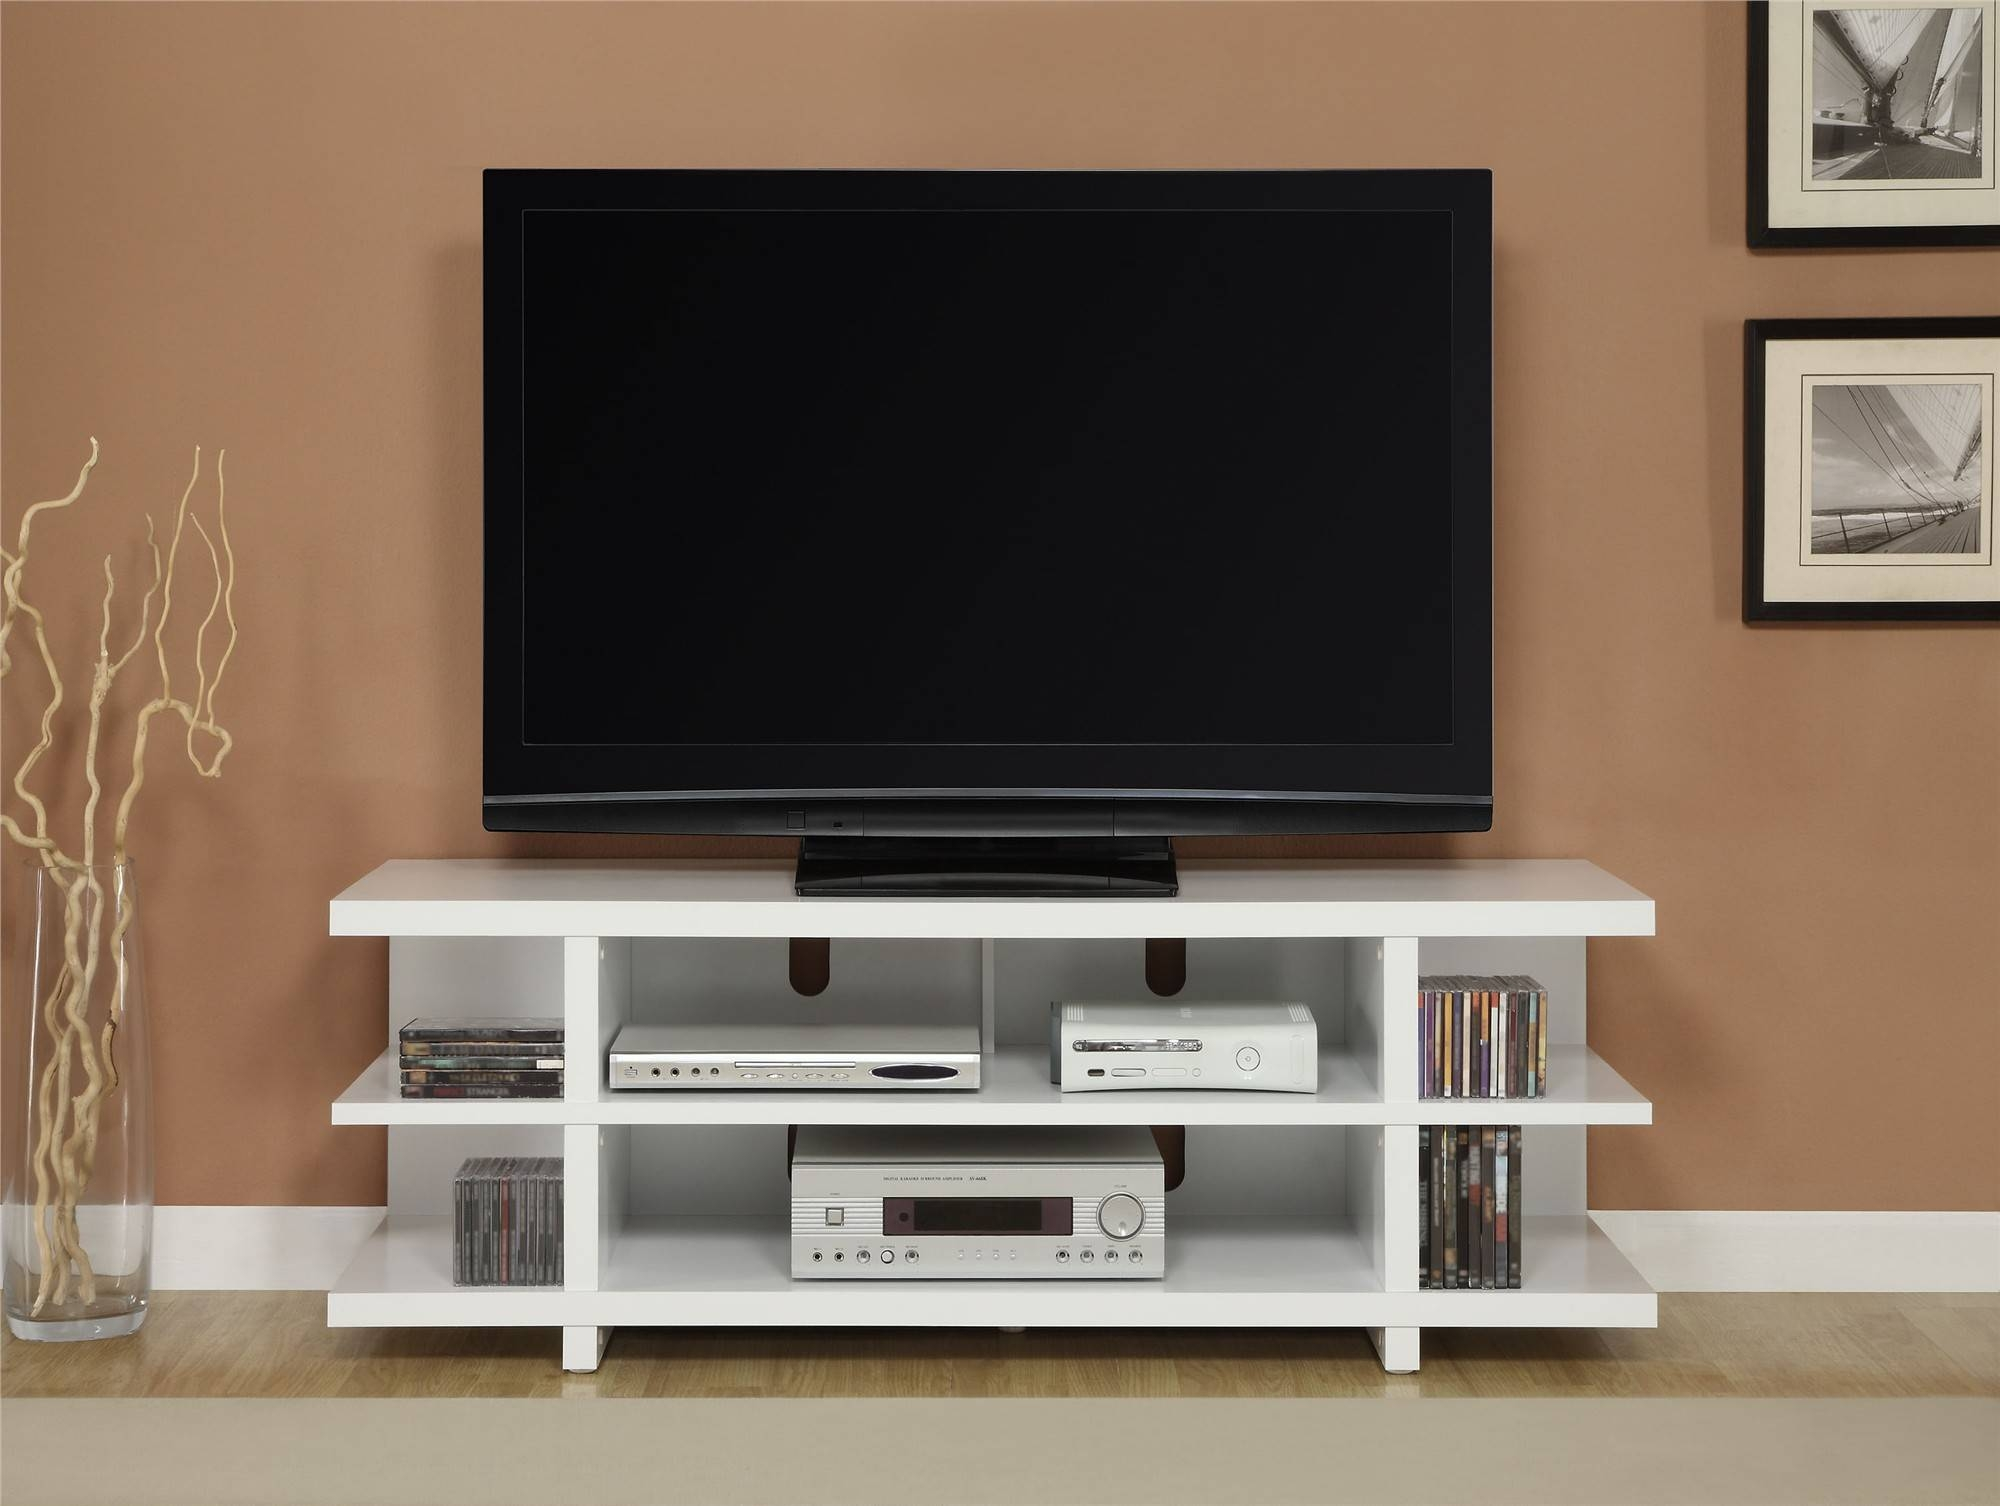 White Stained Wooden Tv Stand Having Several Open Shelves For with Wooden Tv Stands For Flat Screens (Image 14 of 15)